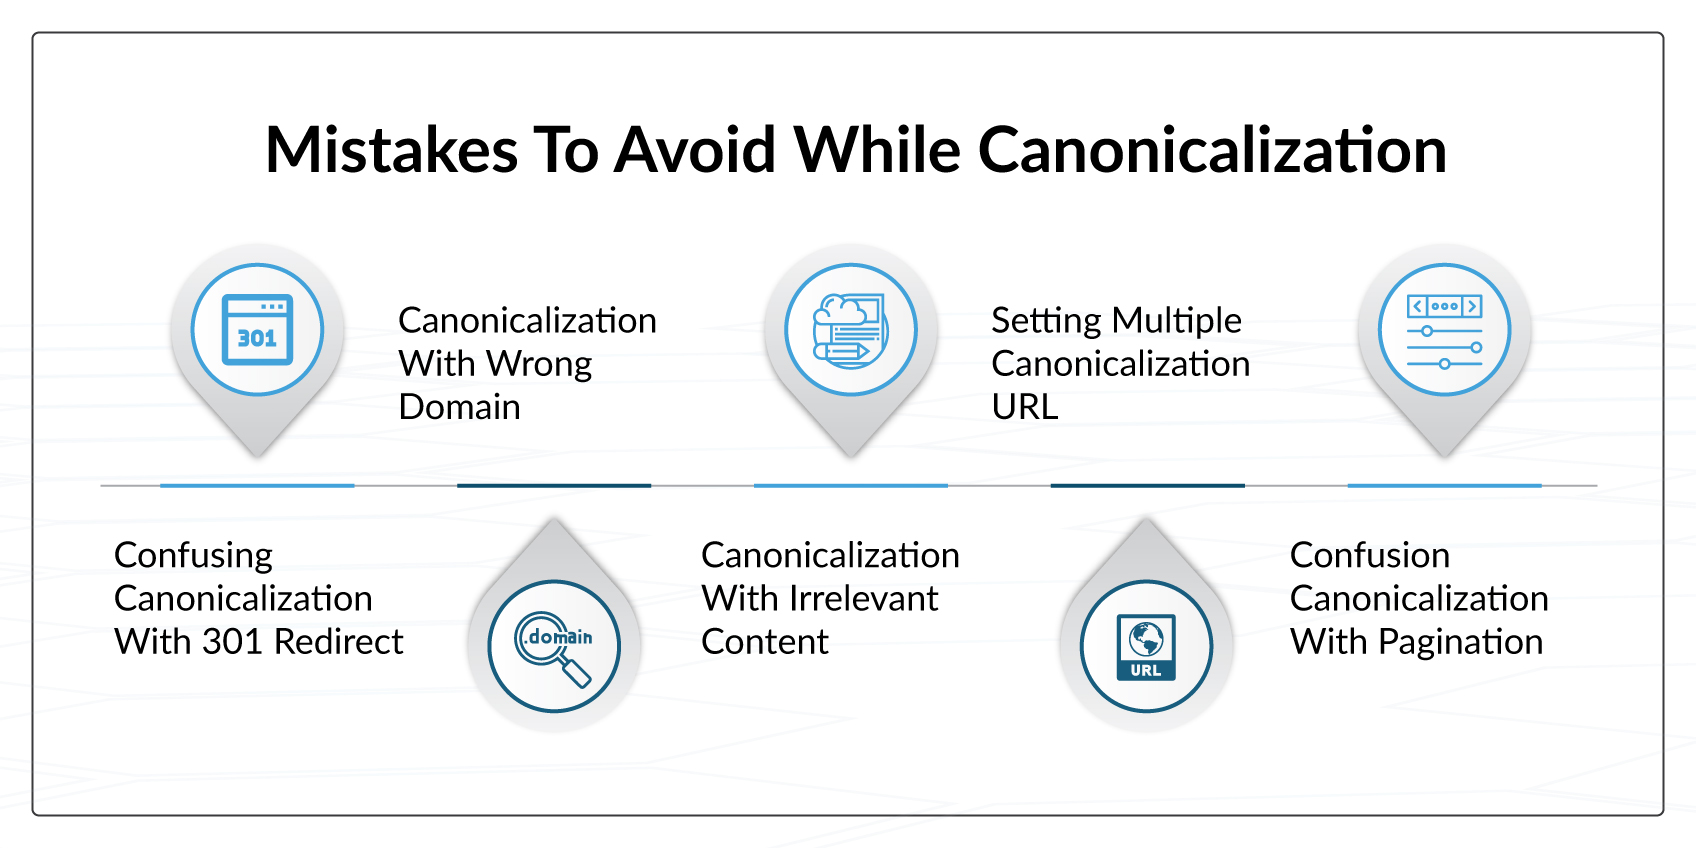 Mistakes To Avoid While Canonicalization